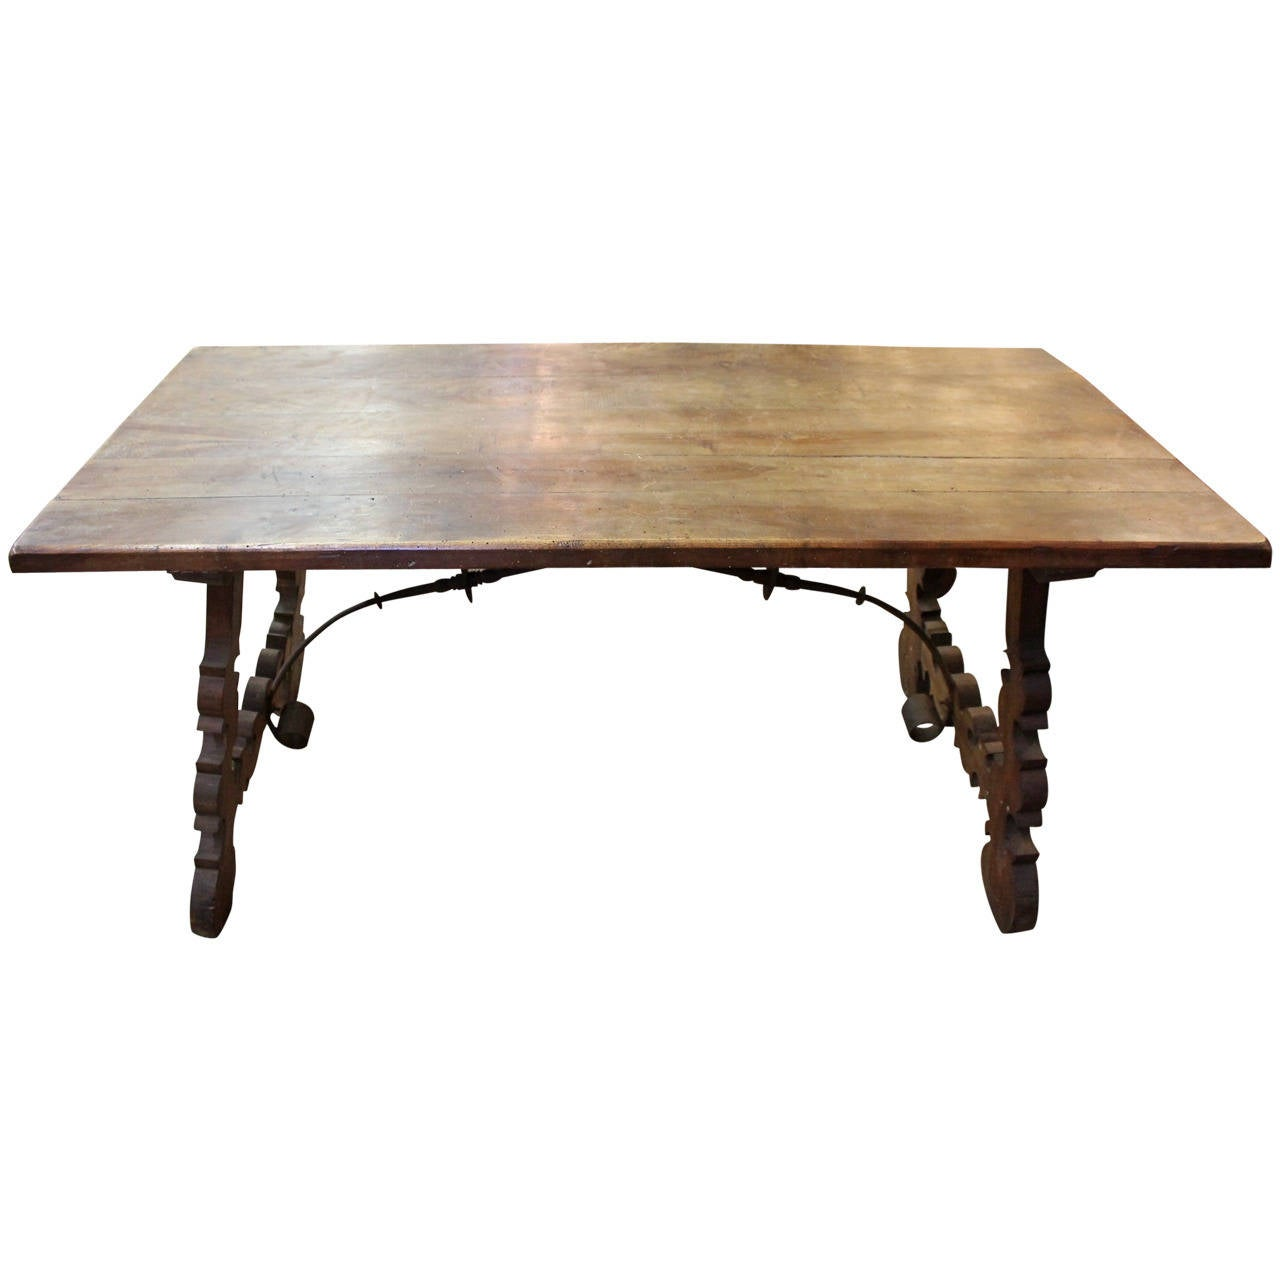 Spanish 19th century dining table desk at 1stdibs for Table in spanish